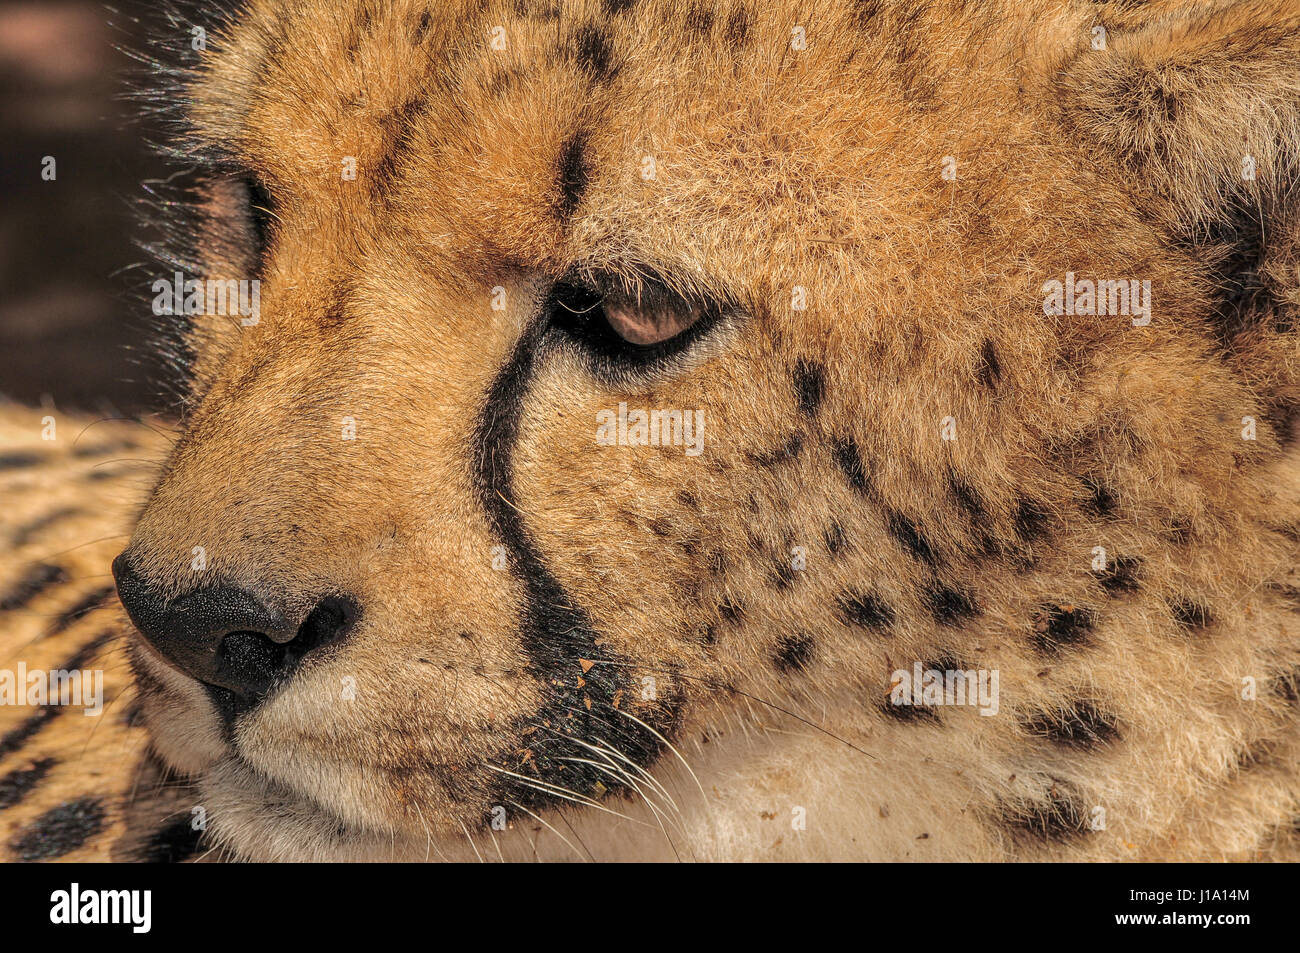 Cheetah, South Africa - Stock Image